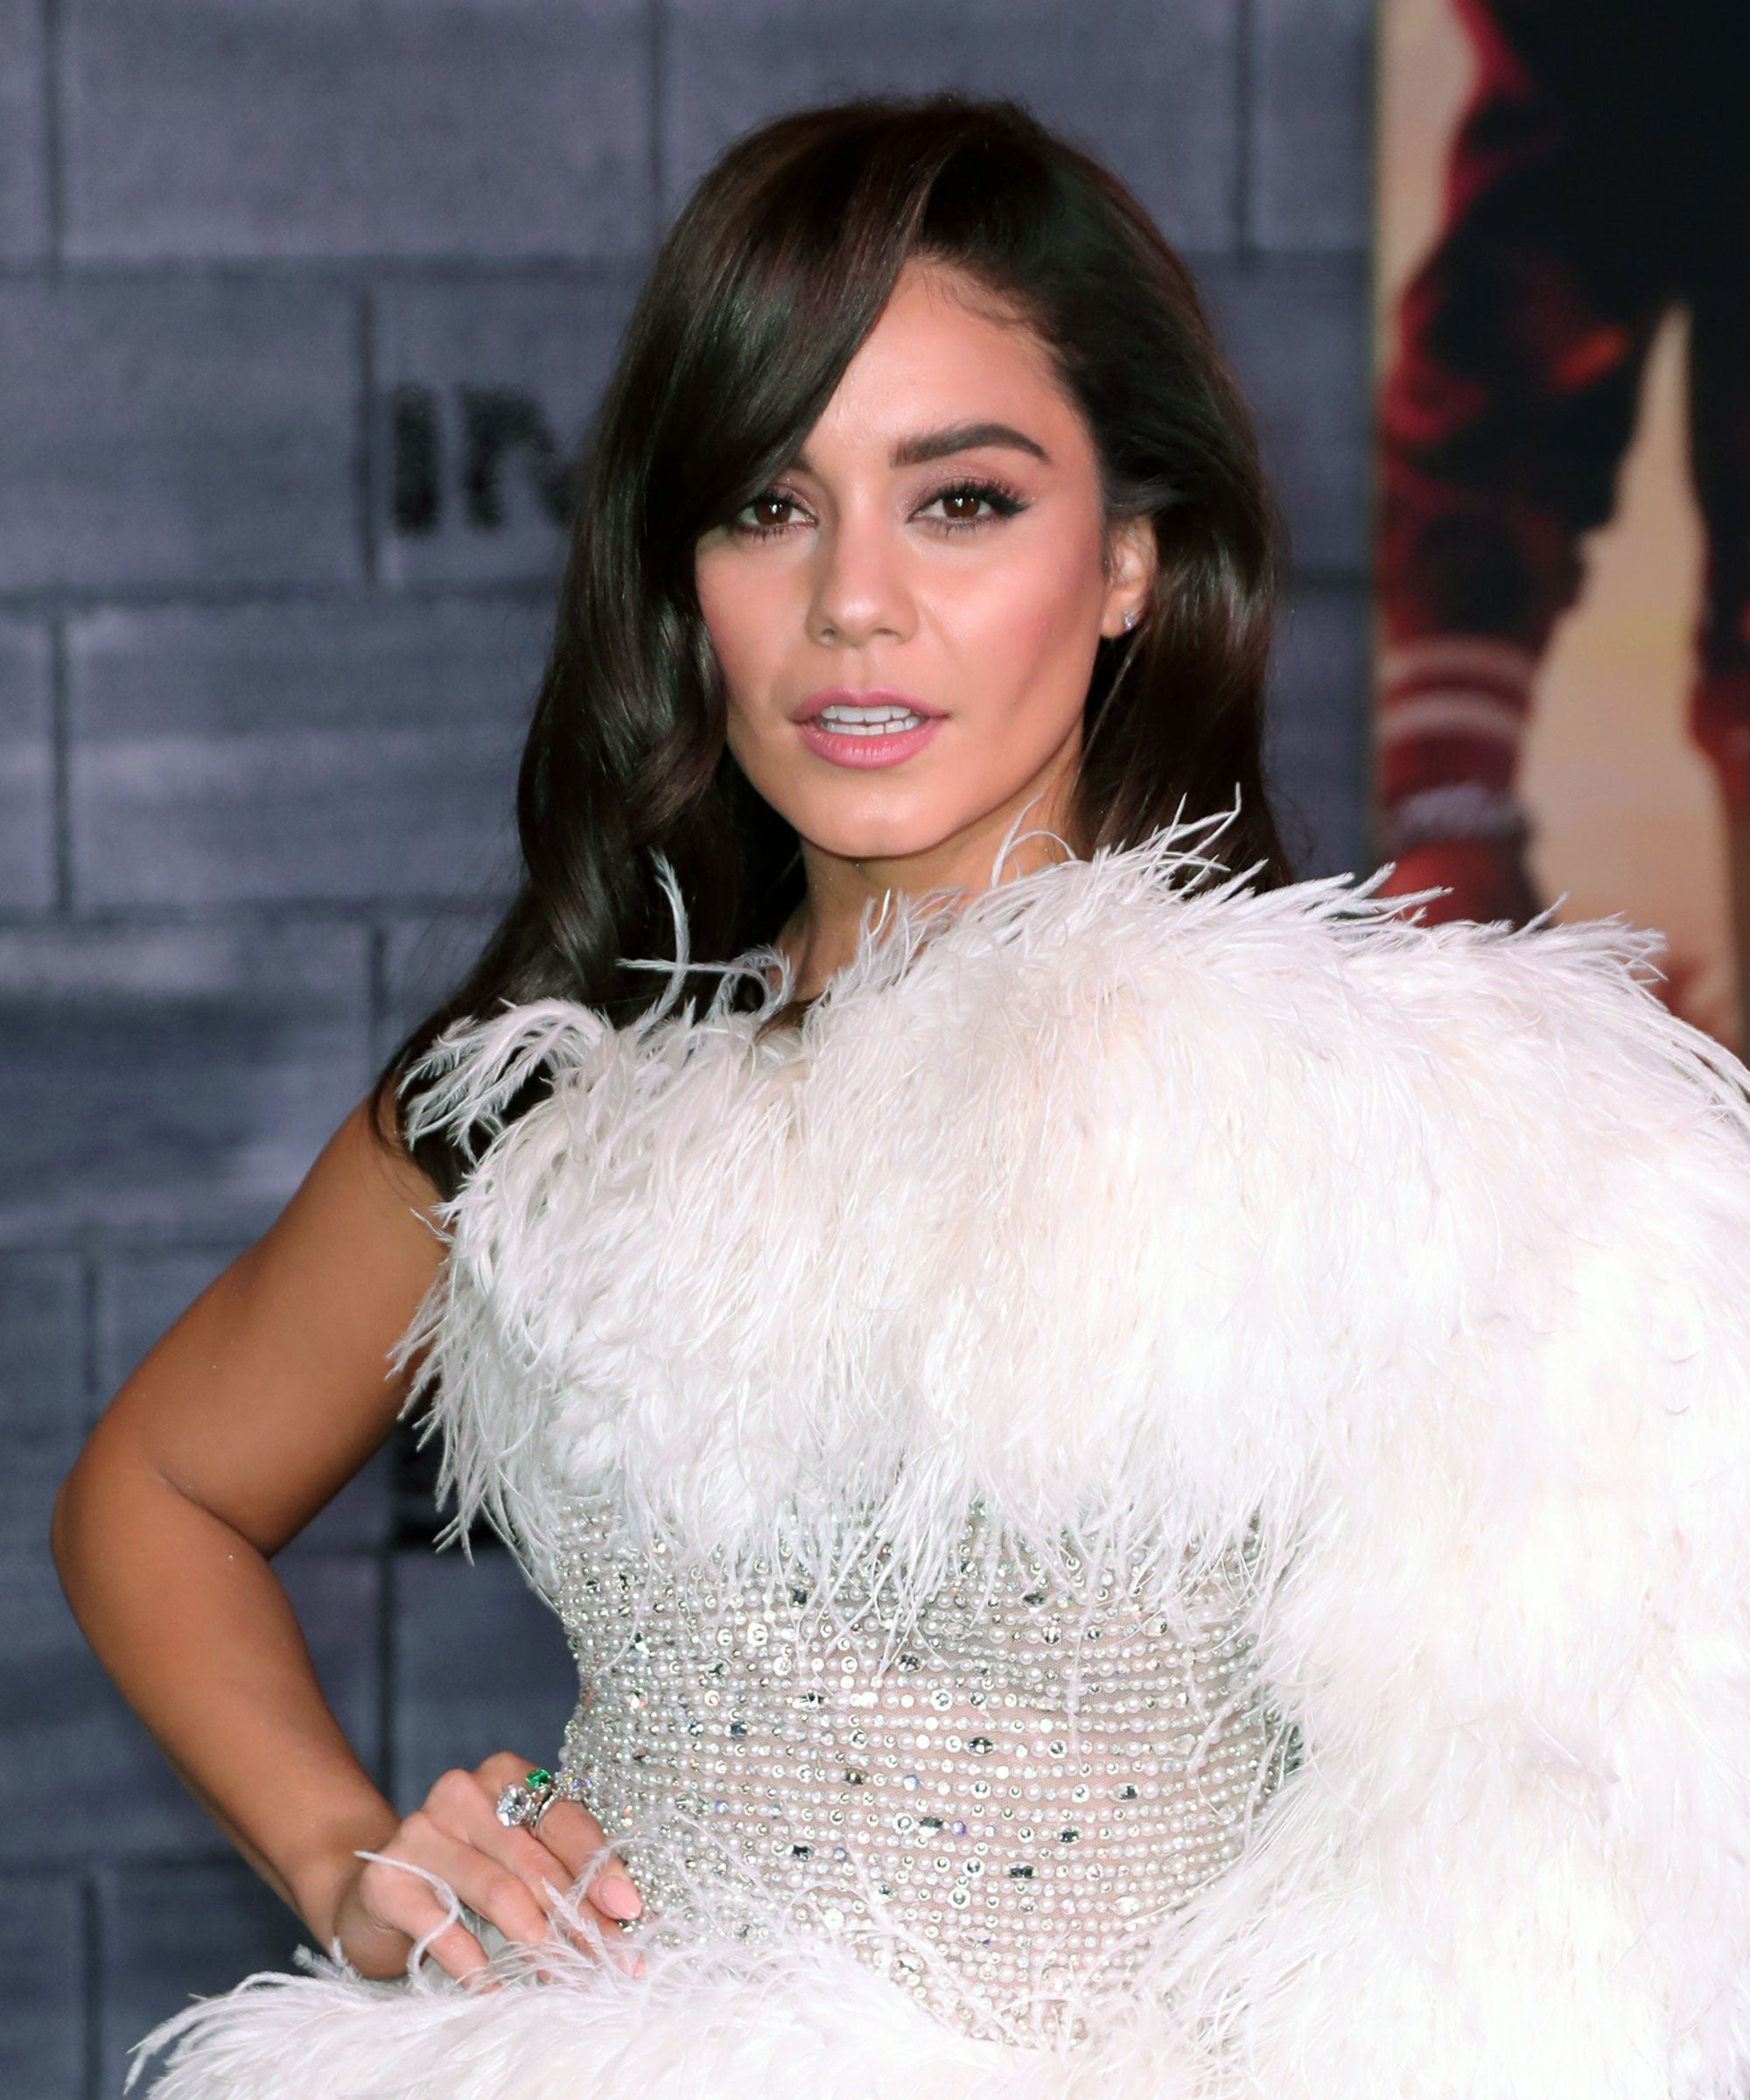 Did Vanessa Hudgens Just Make It Insta Official With An L.A. Laker?